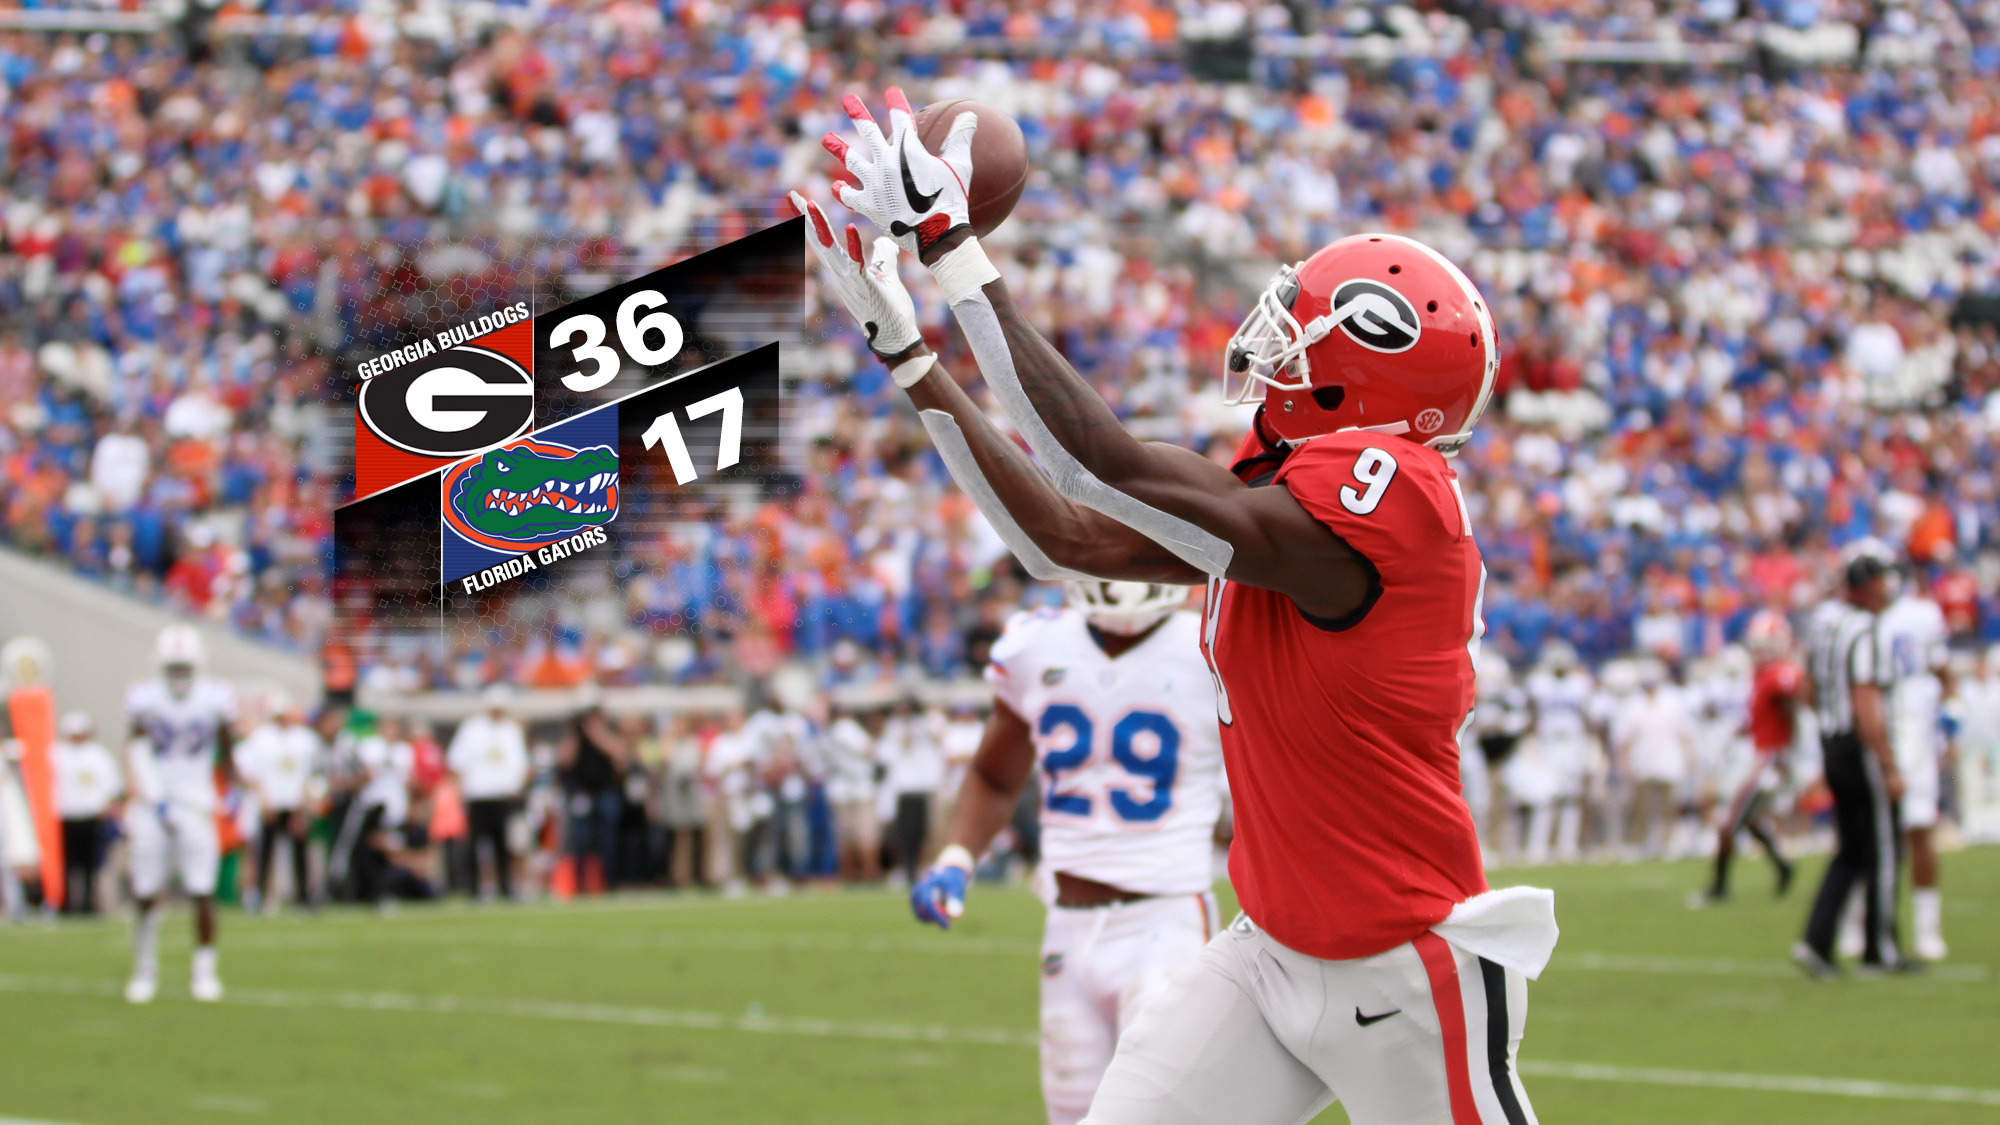 bc4461985 Bulldogs Claim Jacksonville Contest With 36-17 Victory - University ...